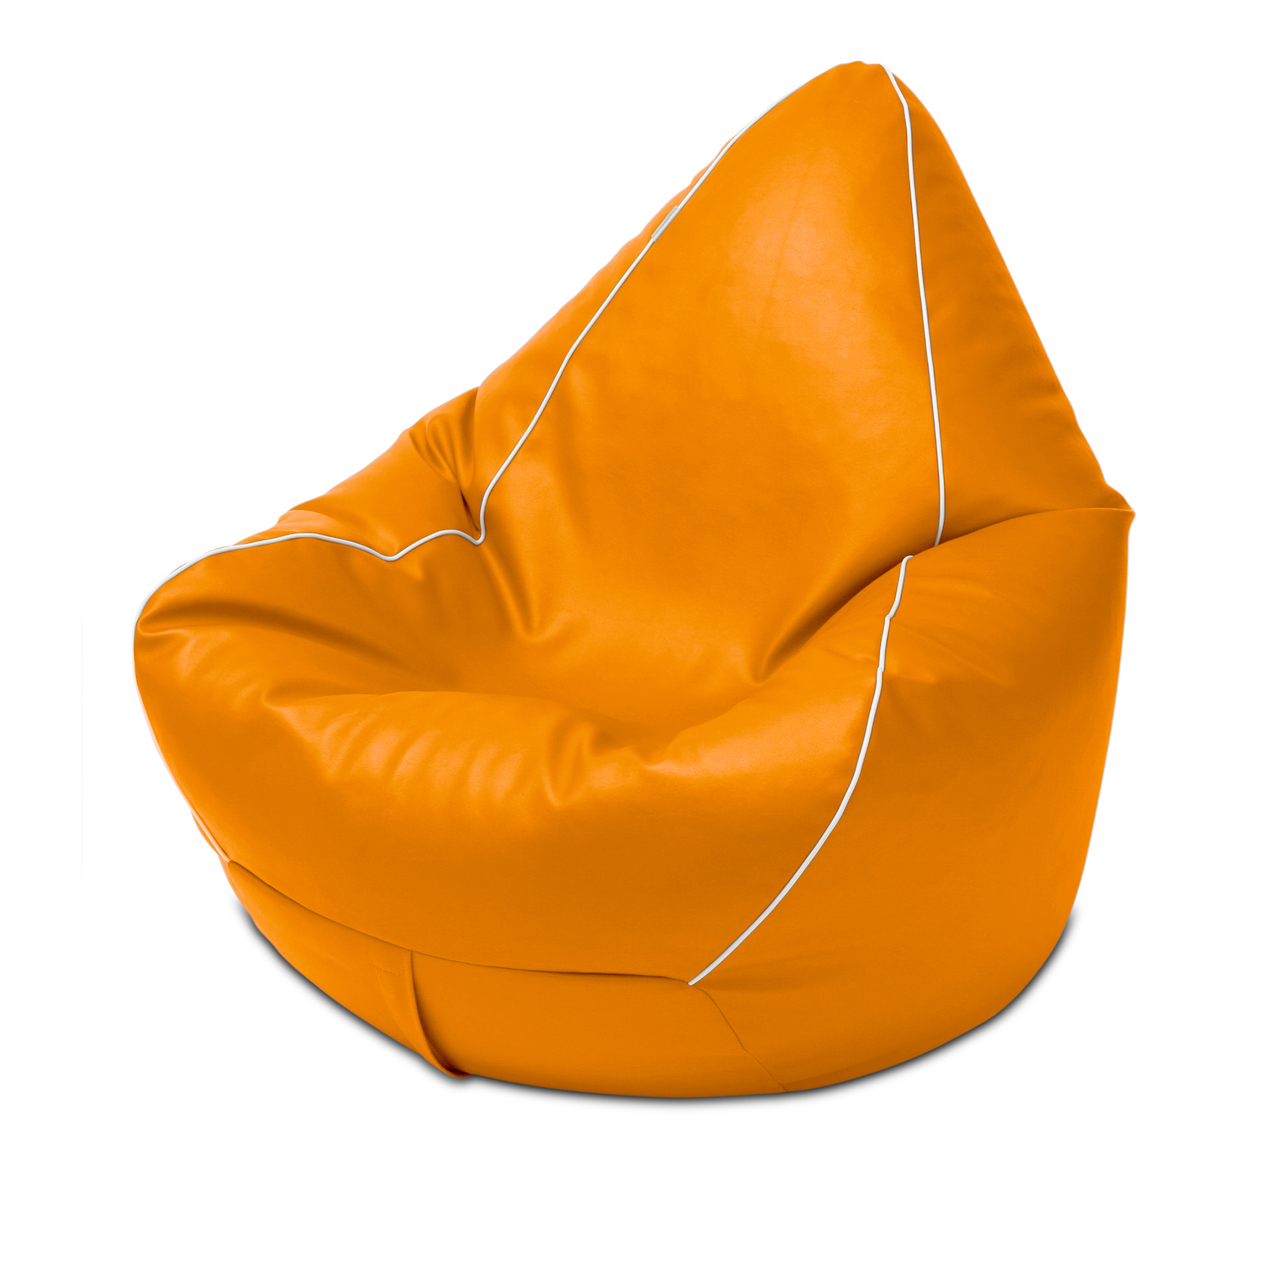 Retro Bean Bag in orange